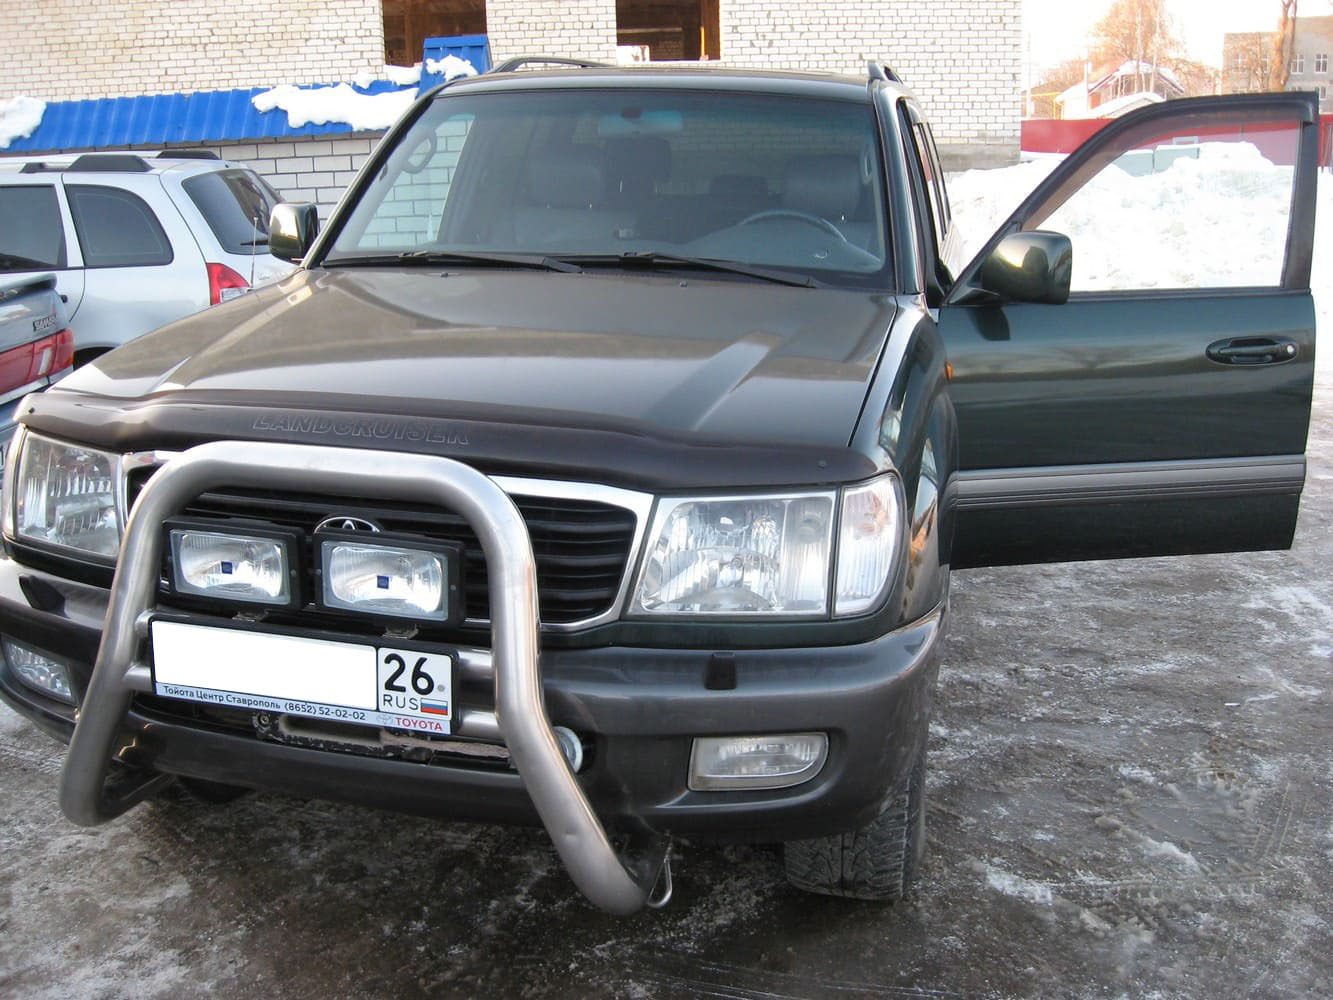 Toyota Land Cruiser 100 Series (1997-2002) 4.7 л.